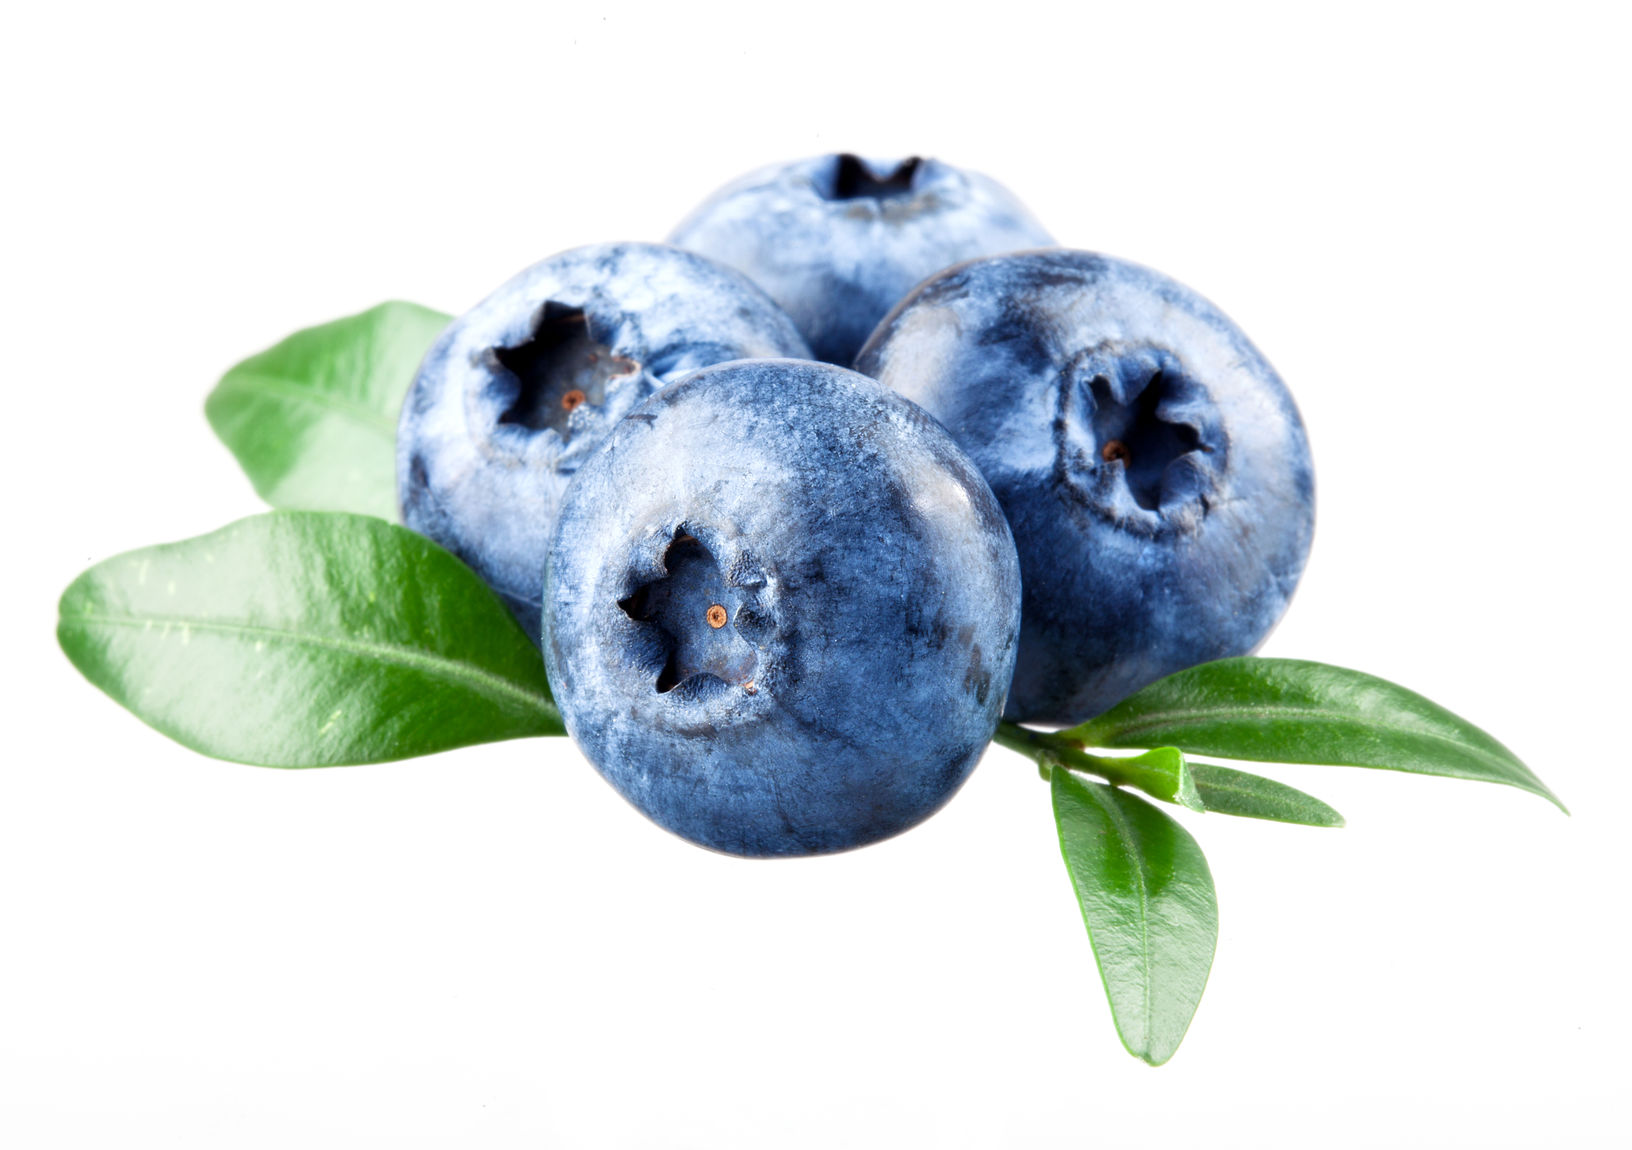 blueberry improves cognition in middle age adults